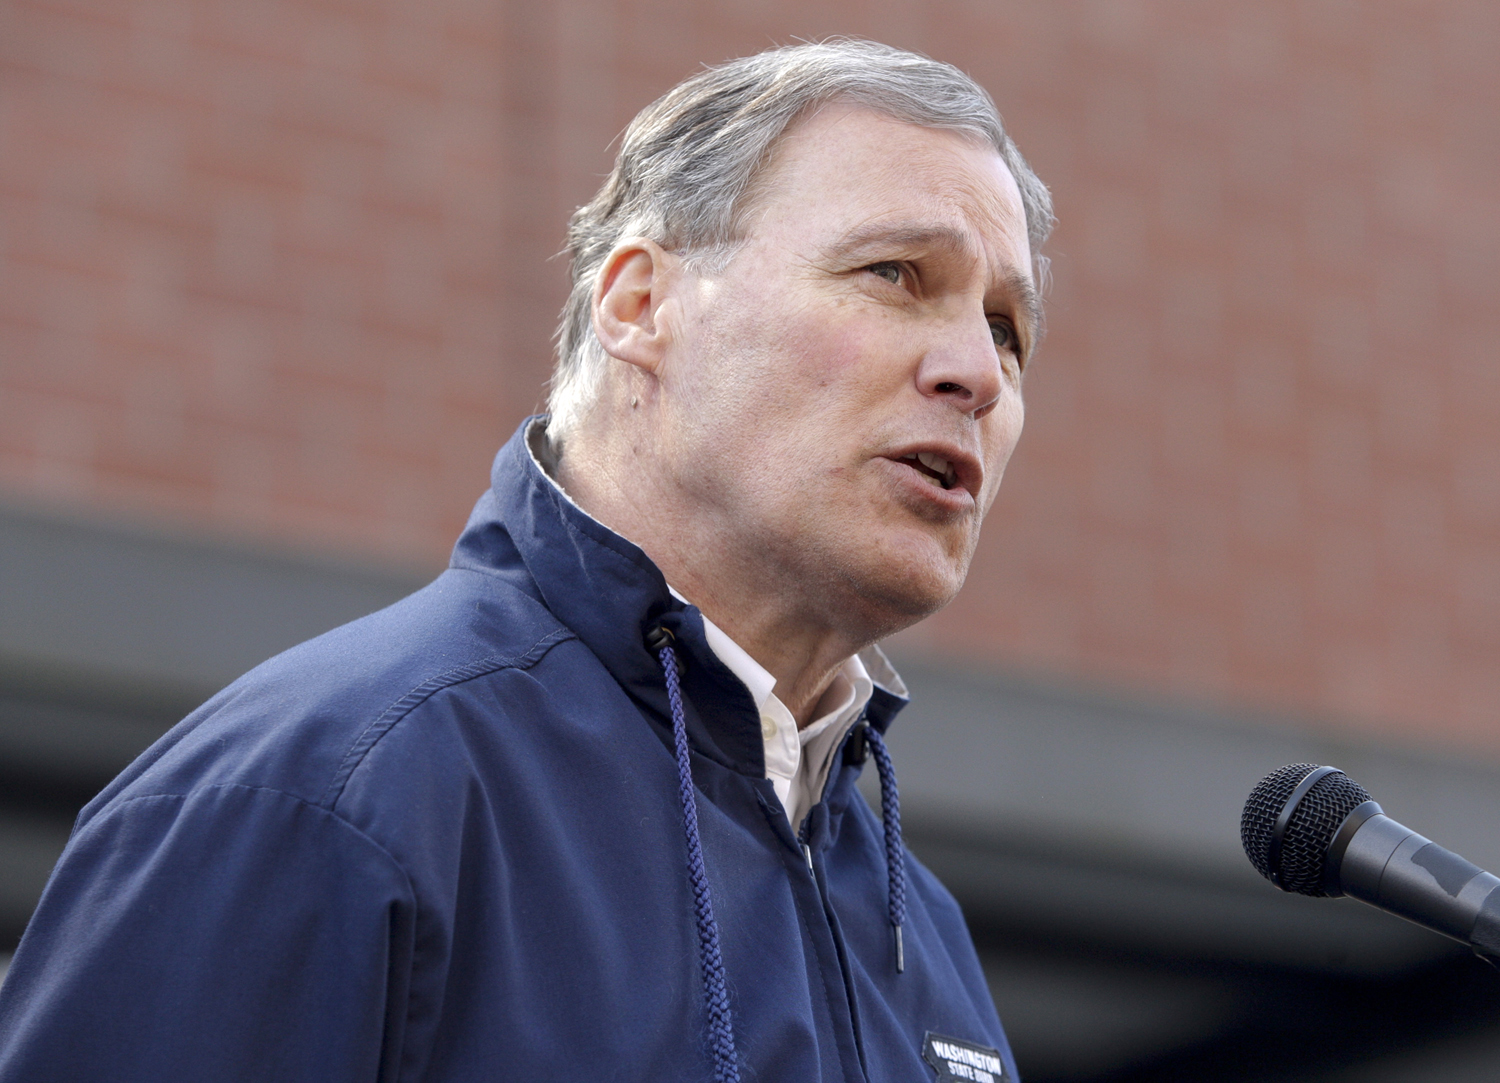 Washington Governor Jay Inslee wrote President Barack Obama on Tuesday to ask for more federal assistance for his disaster struck state.